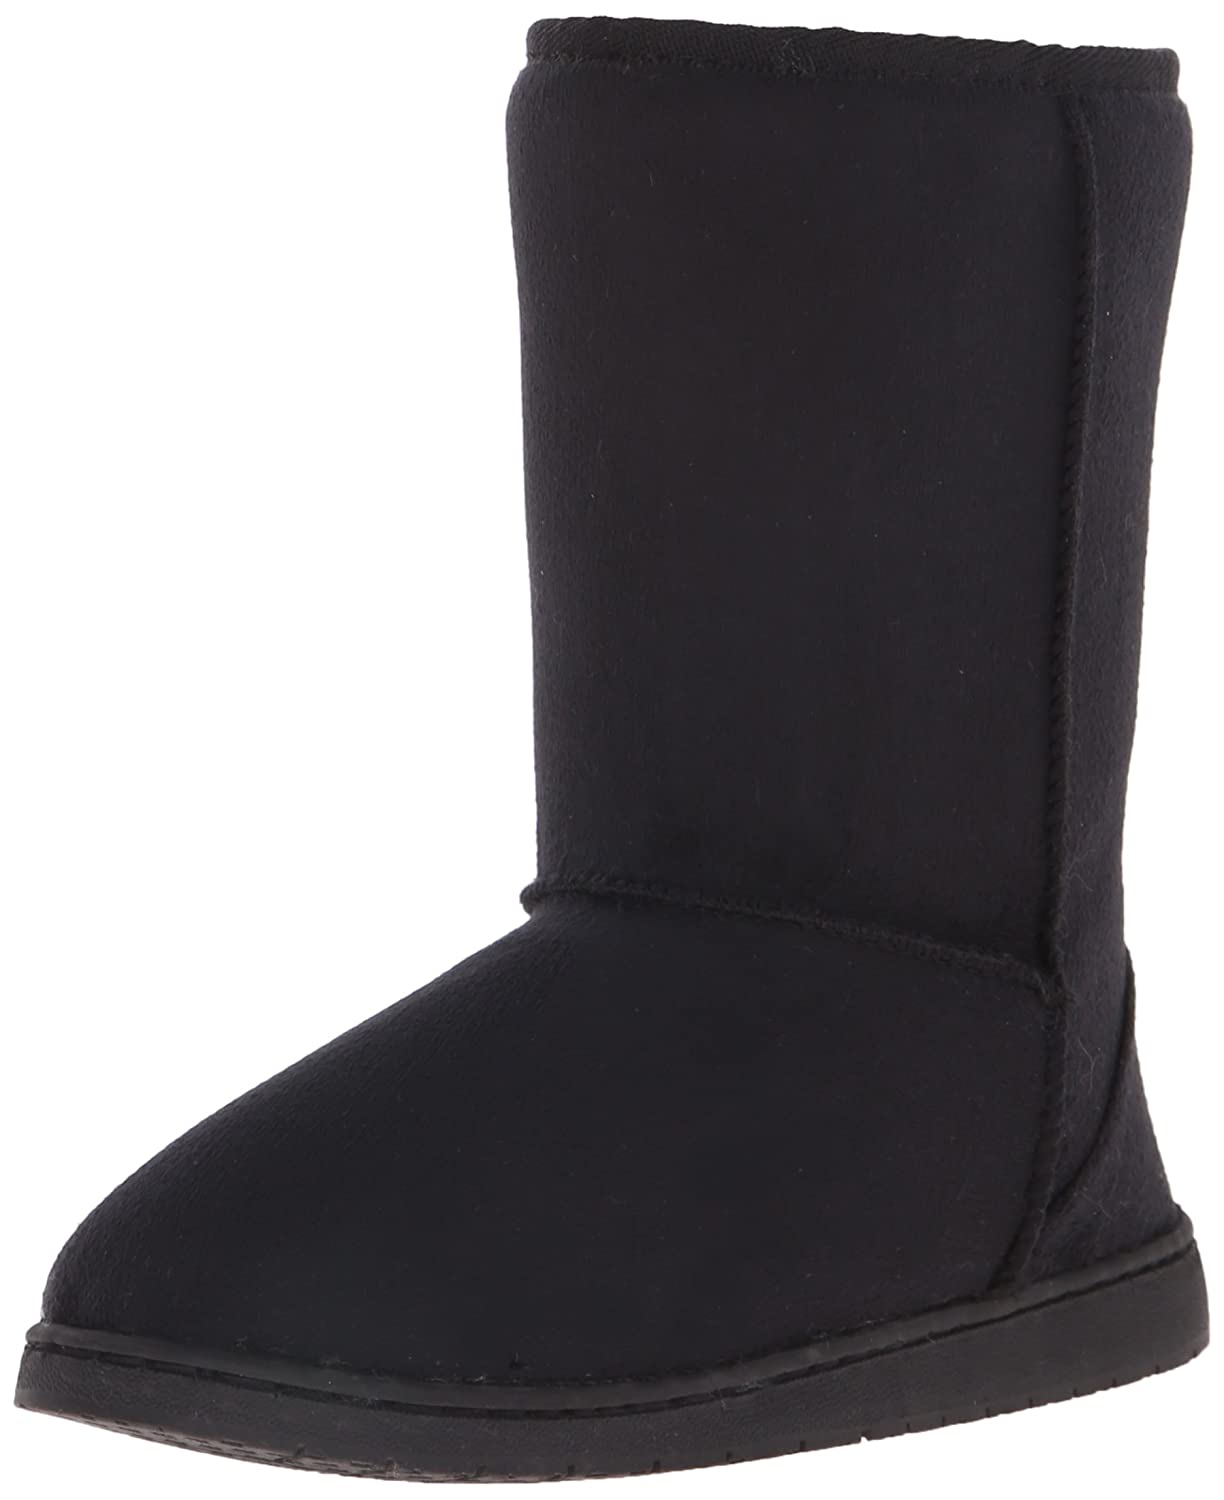 DAWGS Womens 9 Inch Faux Shearling Microfiber Vegan Winter Boots B001KIZPQA 7 B(M) US|Black